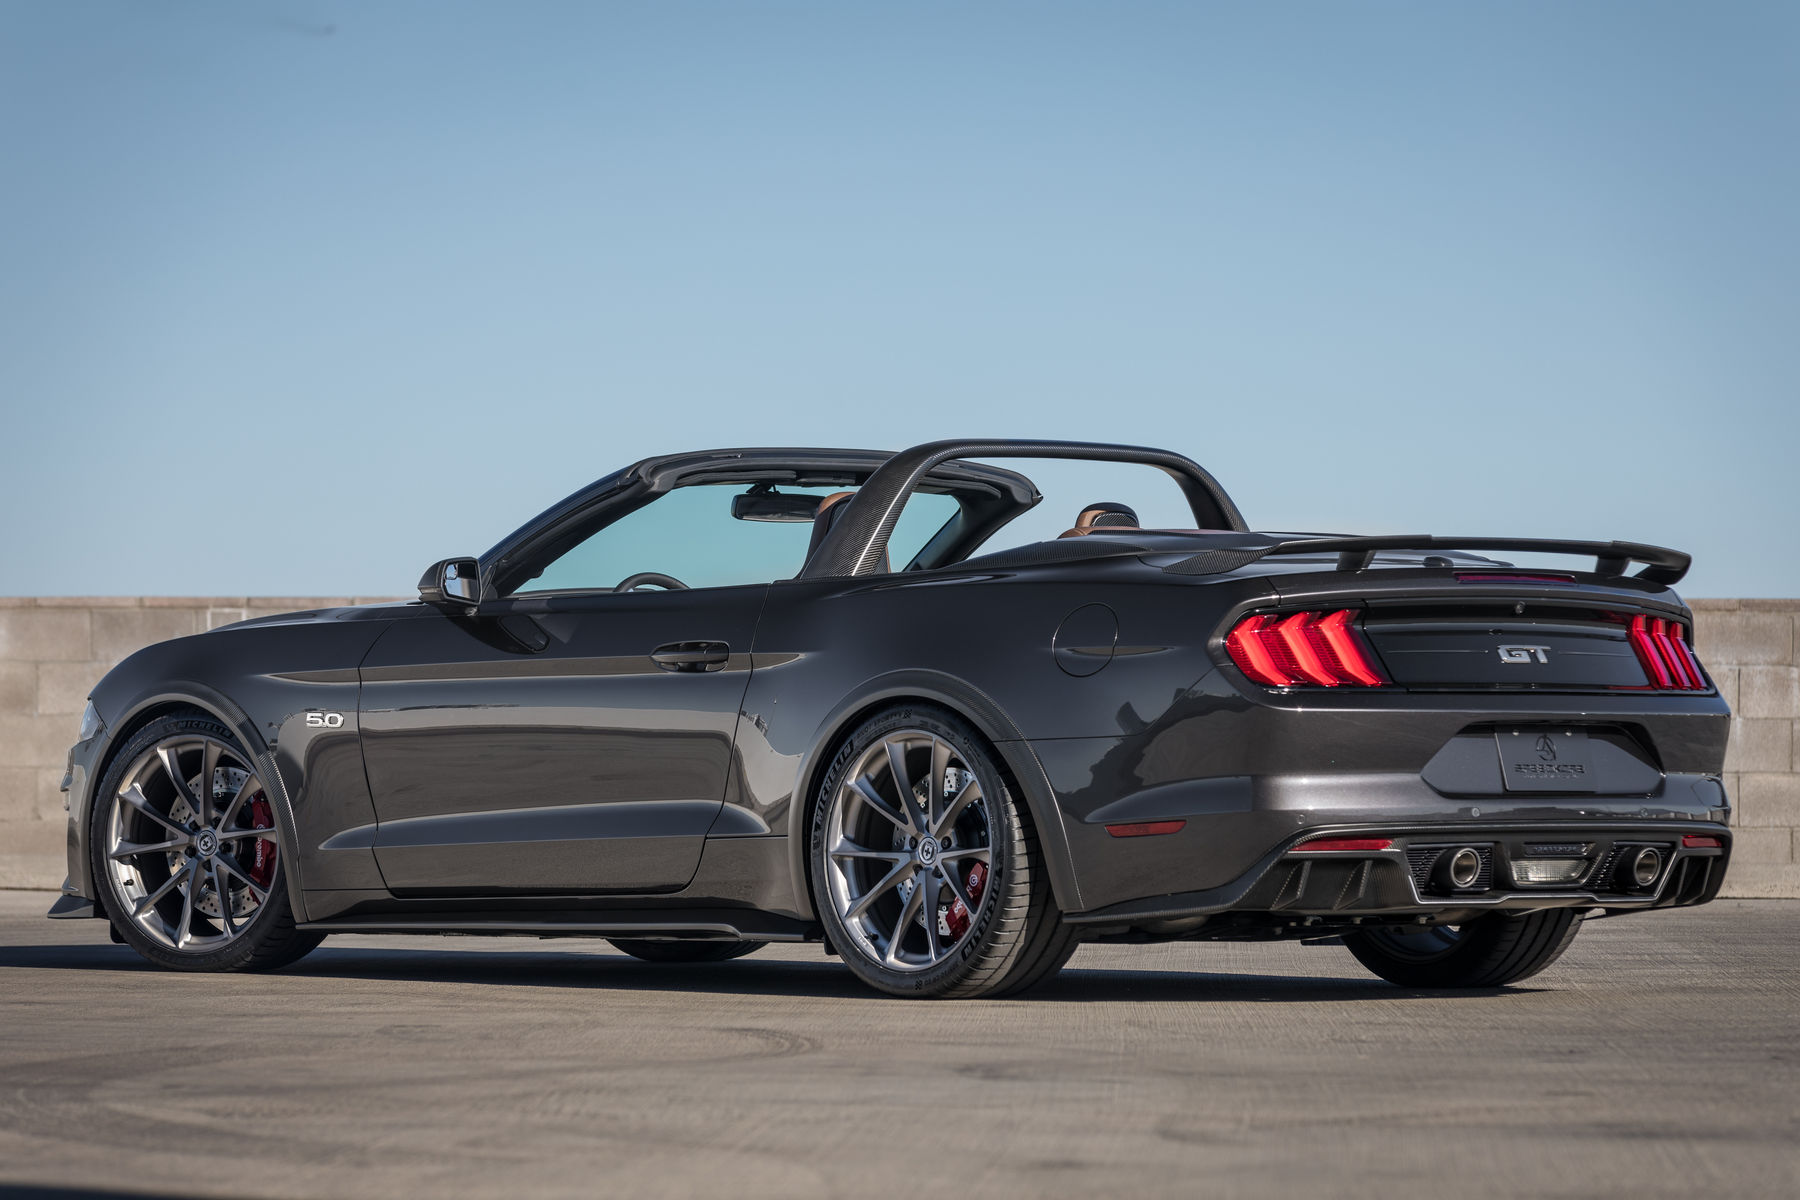 2018 ford mustang 2018 ford mustang gt convertible by speedkore performance group fordsema